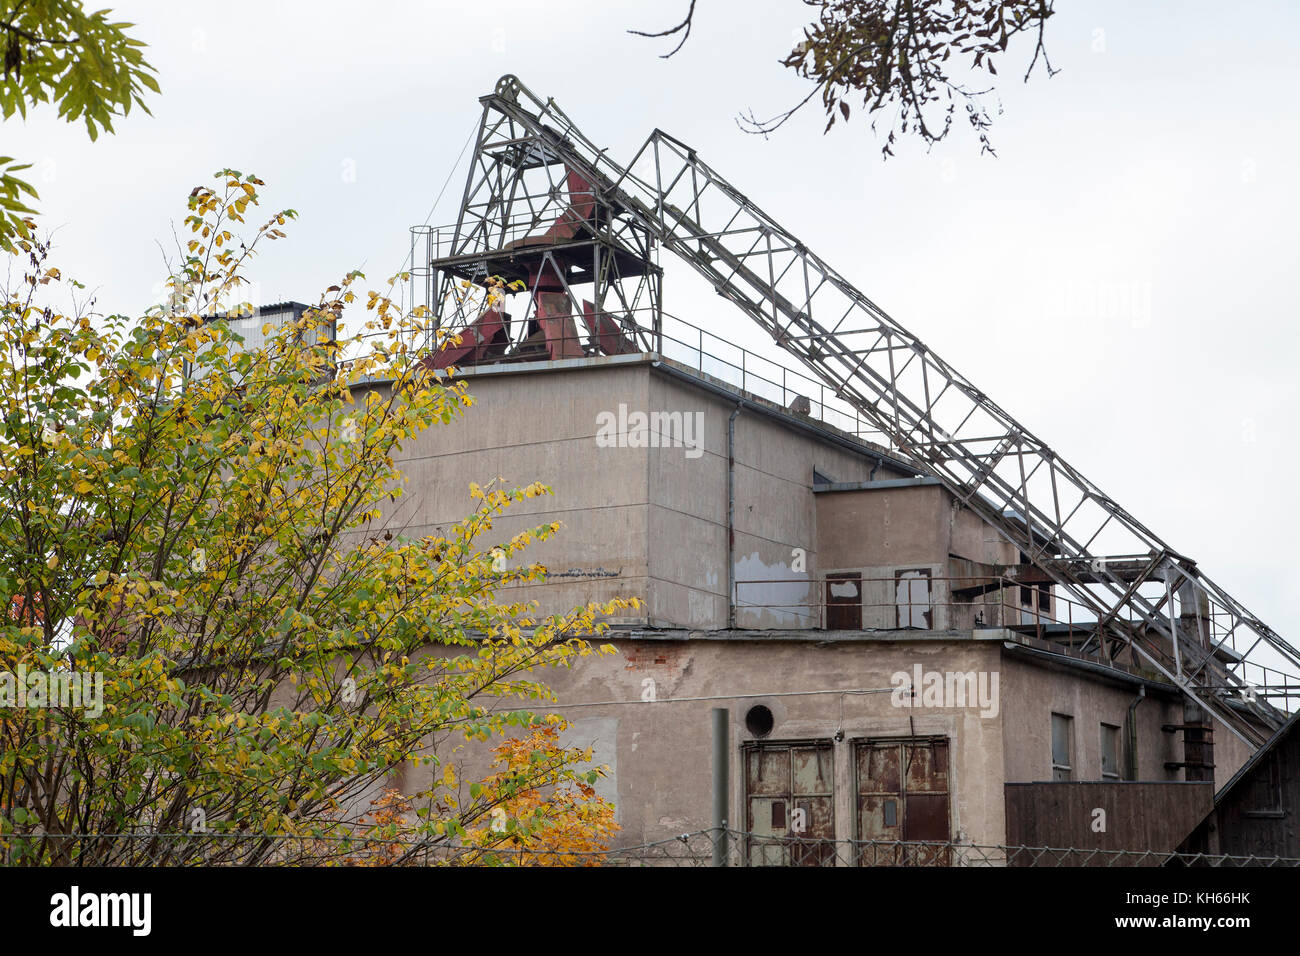 HÄLLEFORSNÄS Abandoned iron industry in Södermanland,after 350 year the plant was closed down. - Stock Image